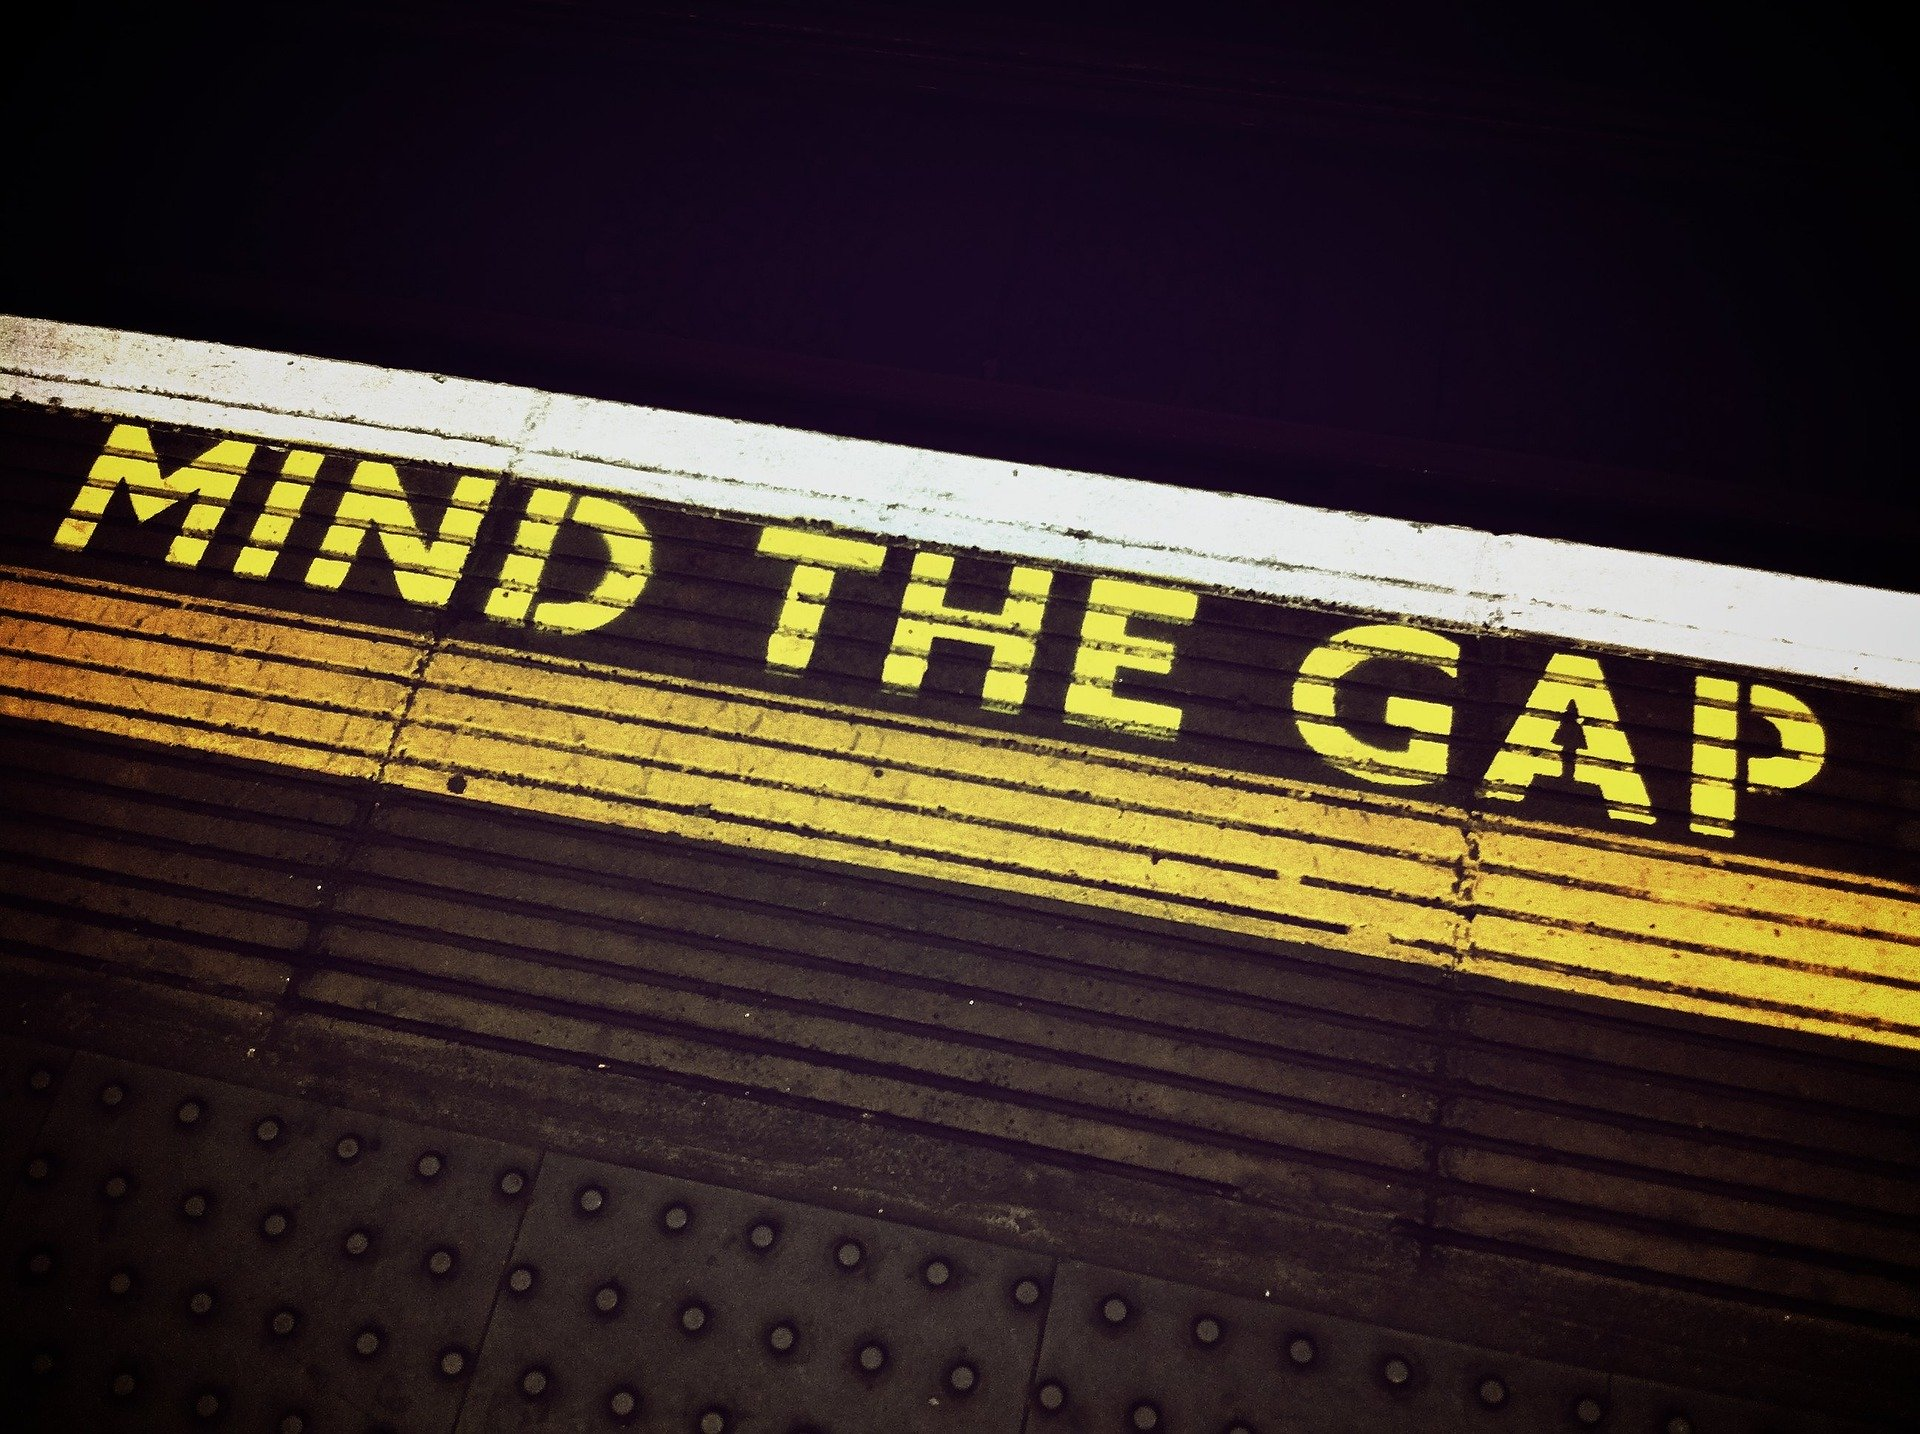 Closing the Gap Network+ Inviting Applications for Kick Starter Funding